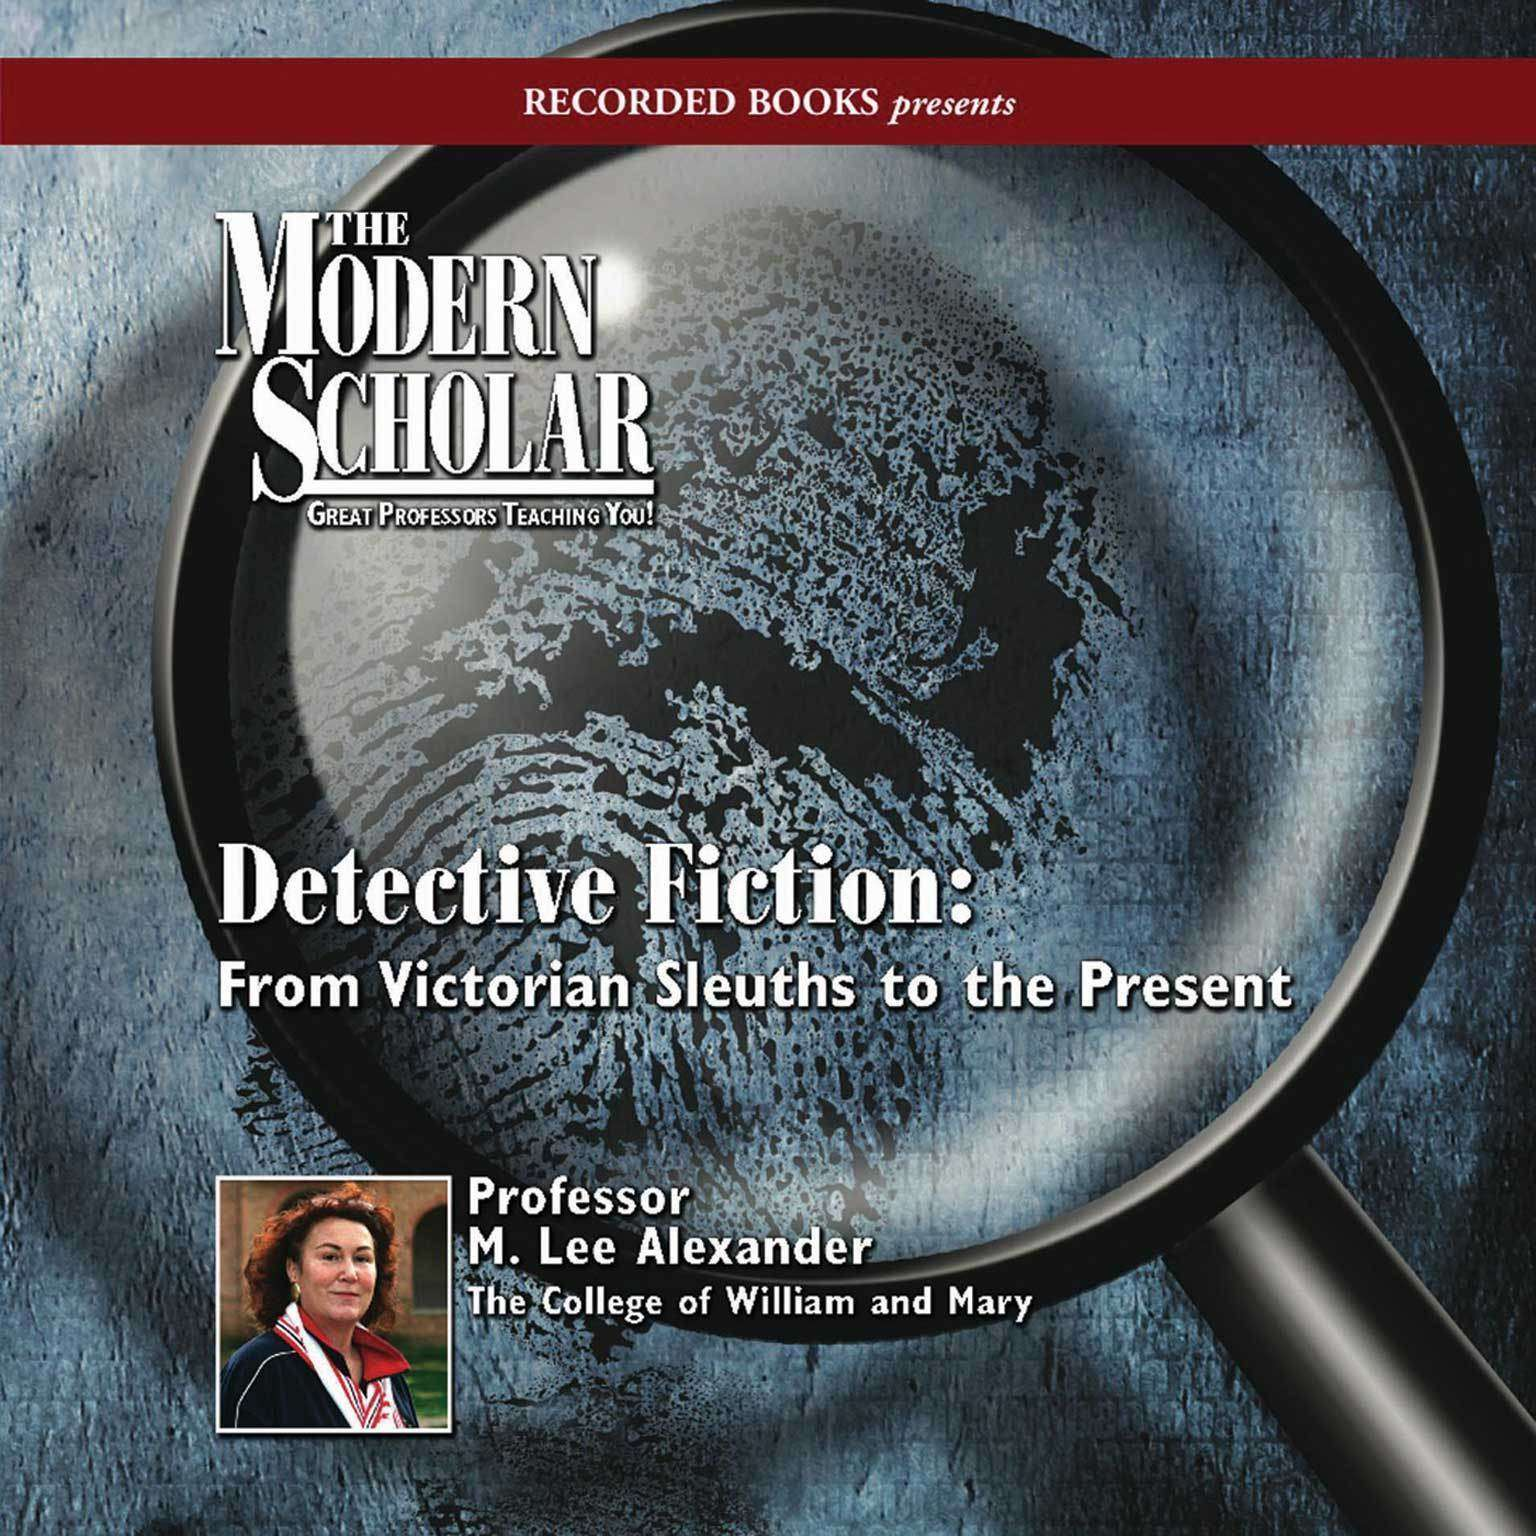 Detective Fiction: From Victorian Sleuths to the Present Audiobook, by M. Lee Alexander